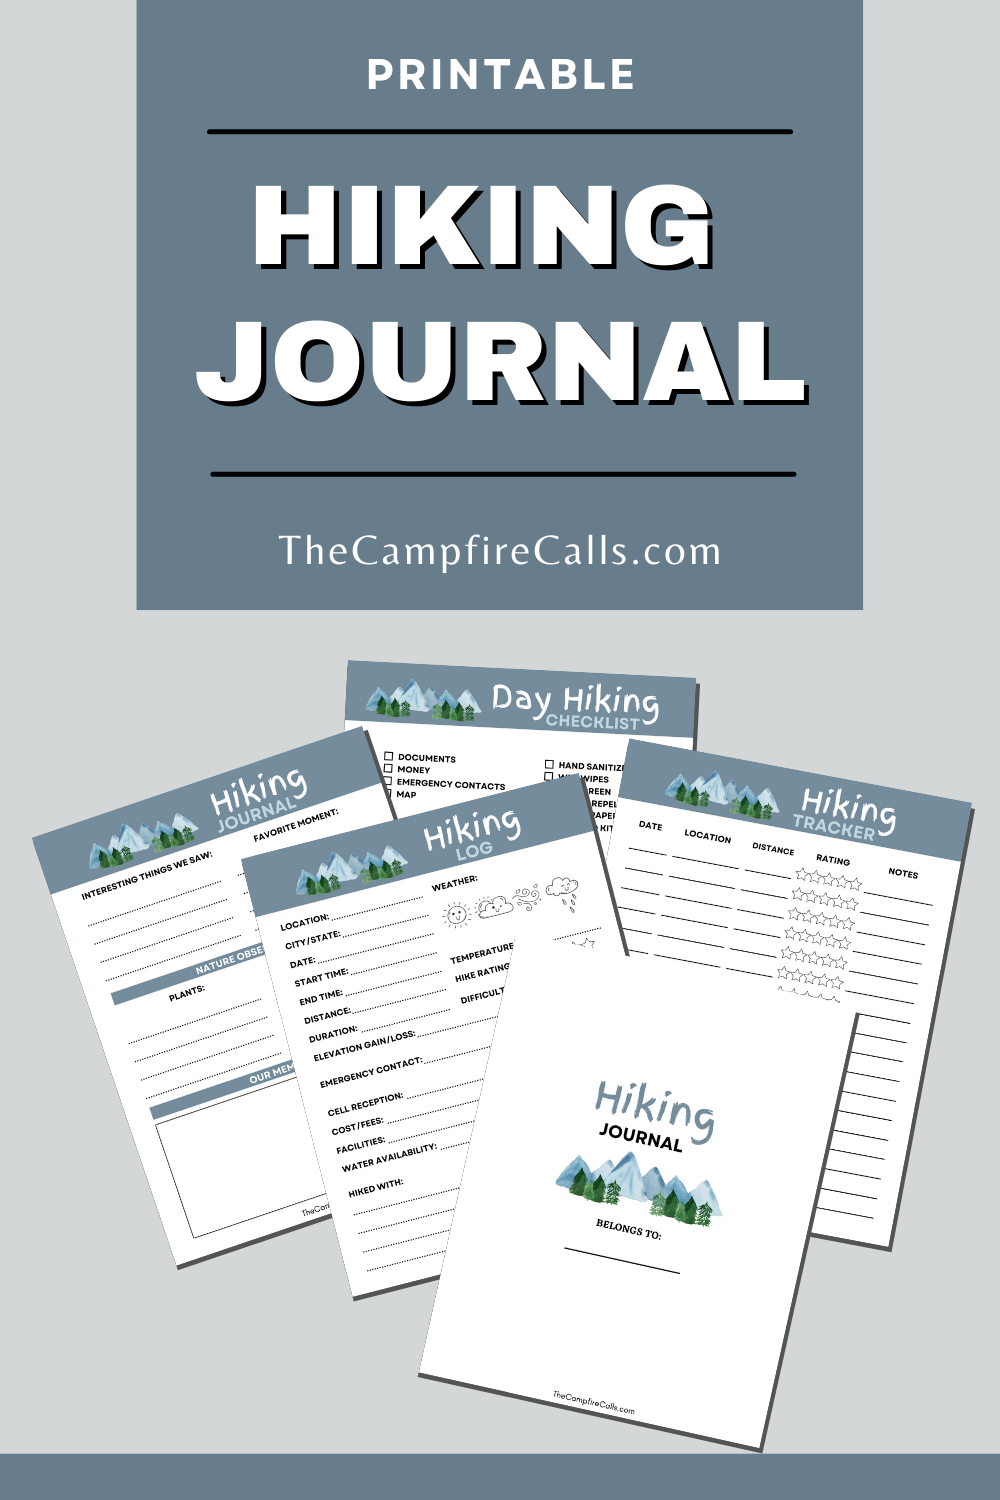 Use this FREE Hiking Planner Printable Bundle to plan family hiking adventures and record all your hiking memories for years to come.